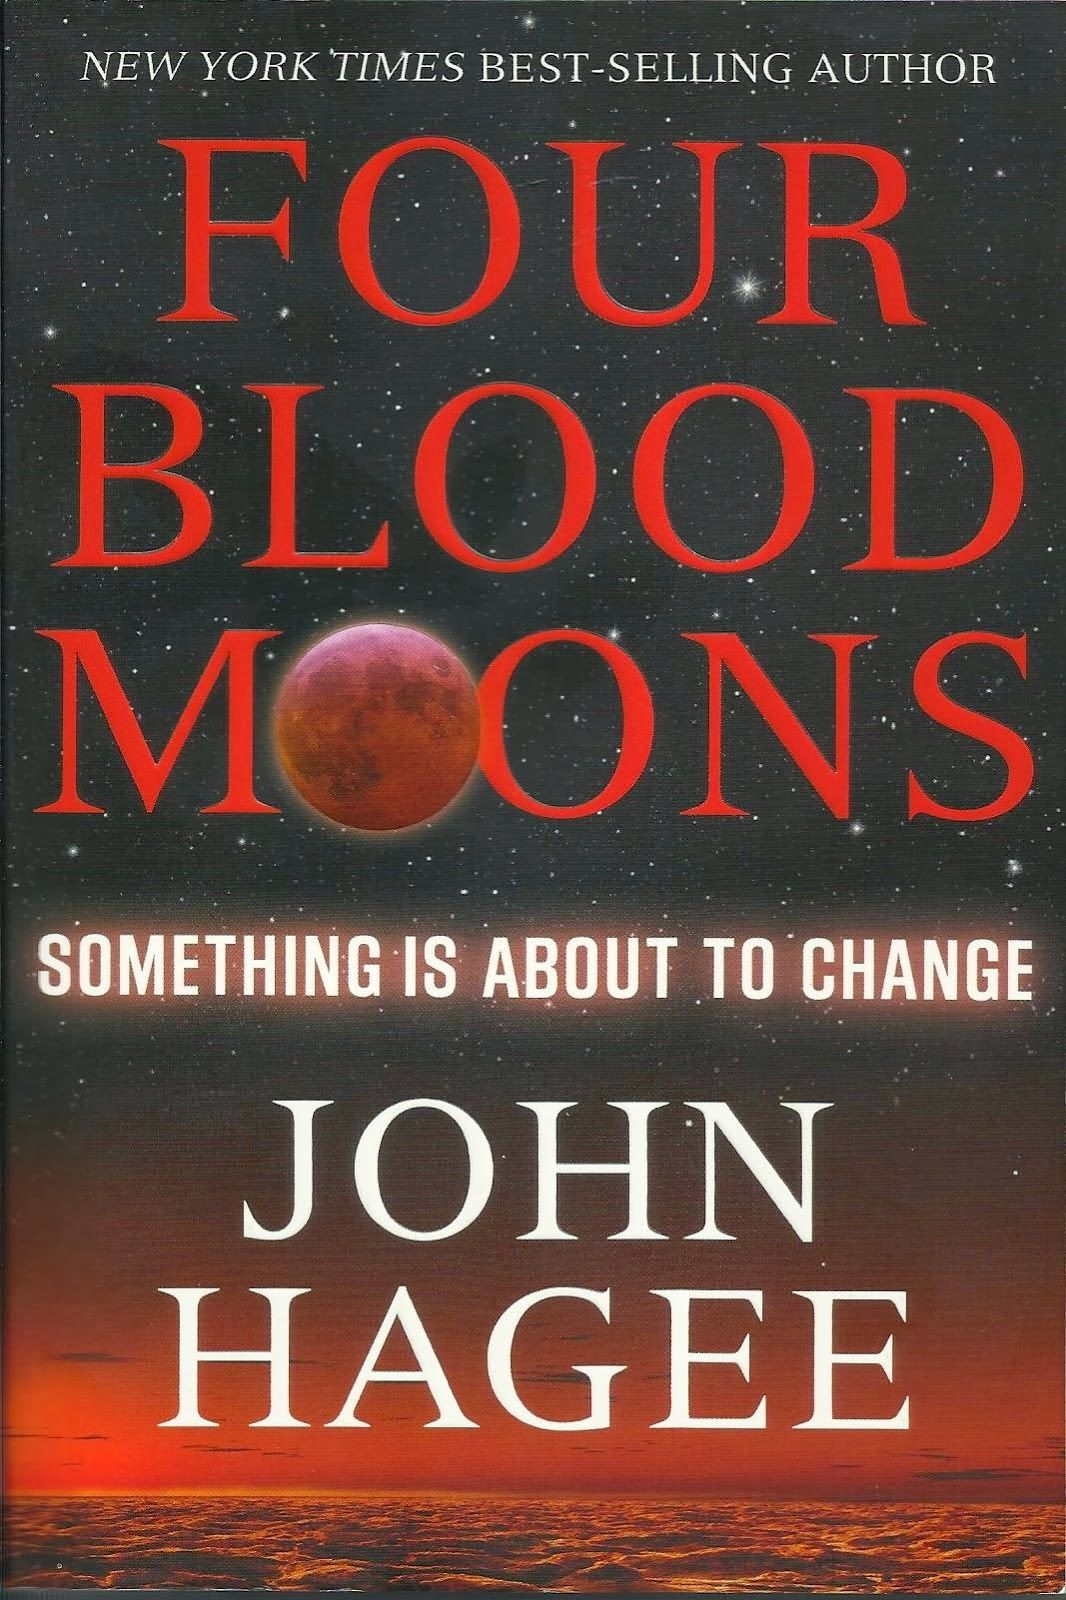 Walking With Faith In God 1: JOHN HAGEE - FOUR BLOOD MOONS